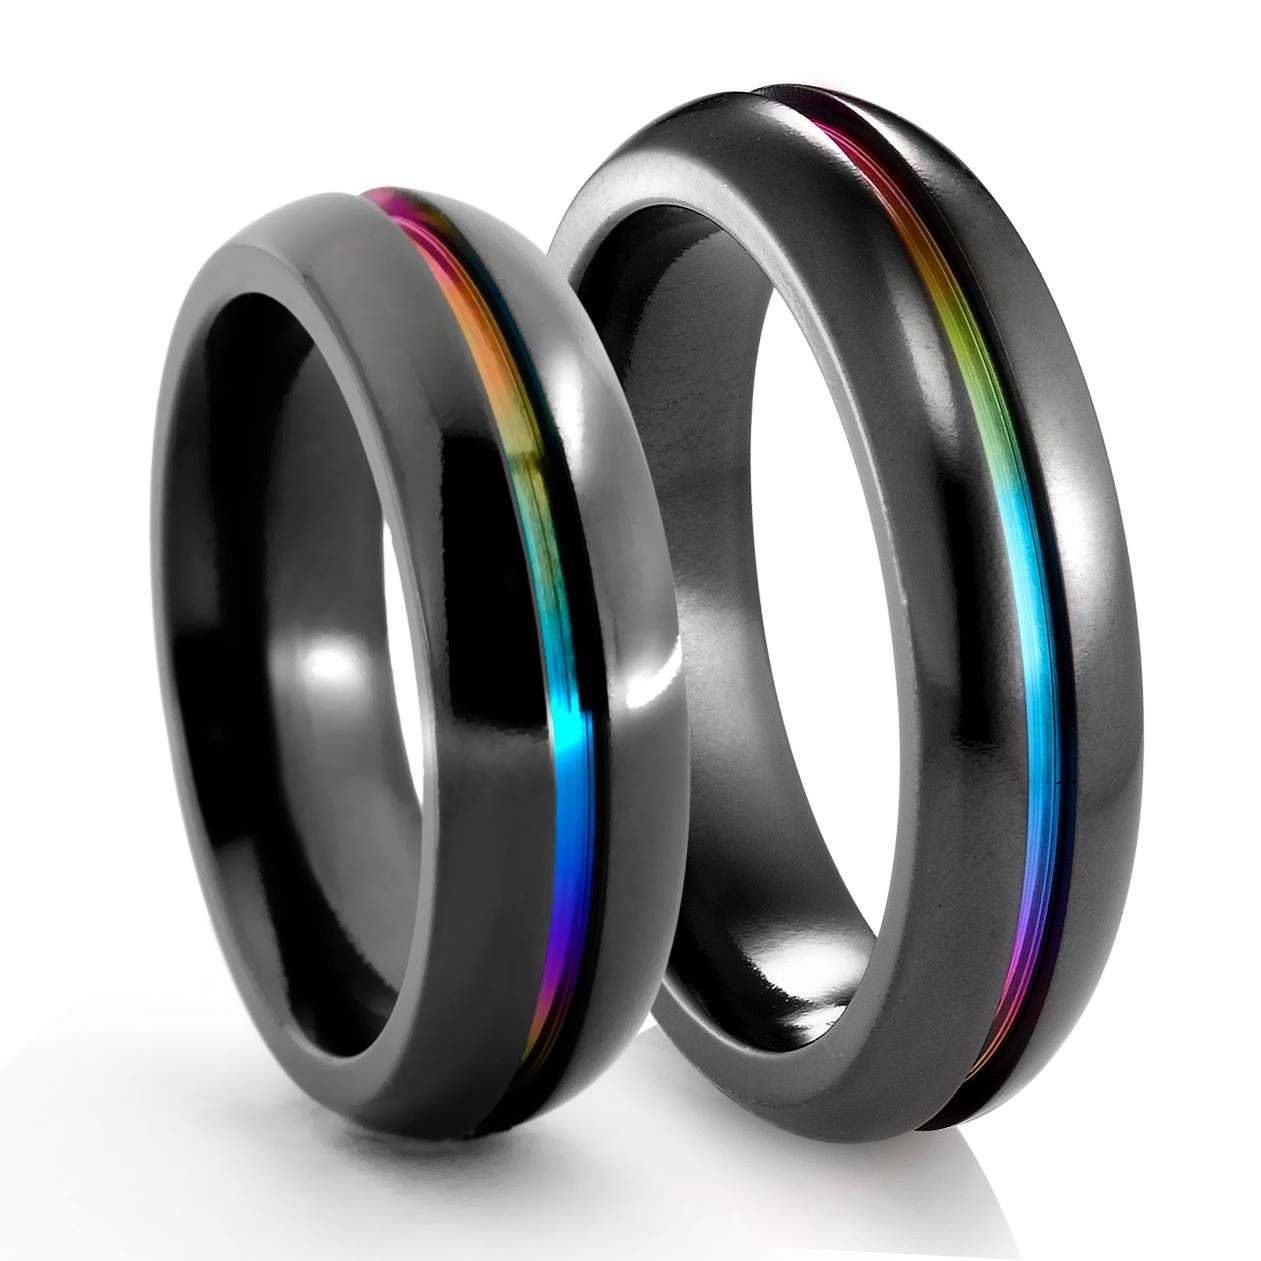 edward mirell matching rainbow inlay rings 6mm - Rainbow Wedding Rings